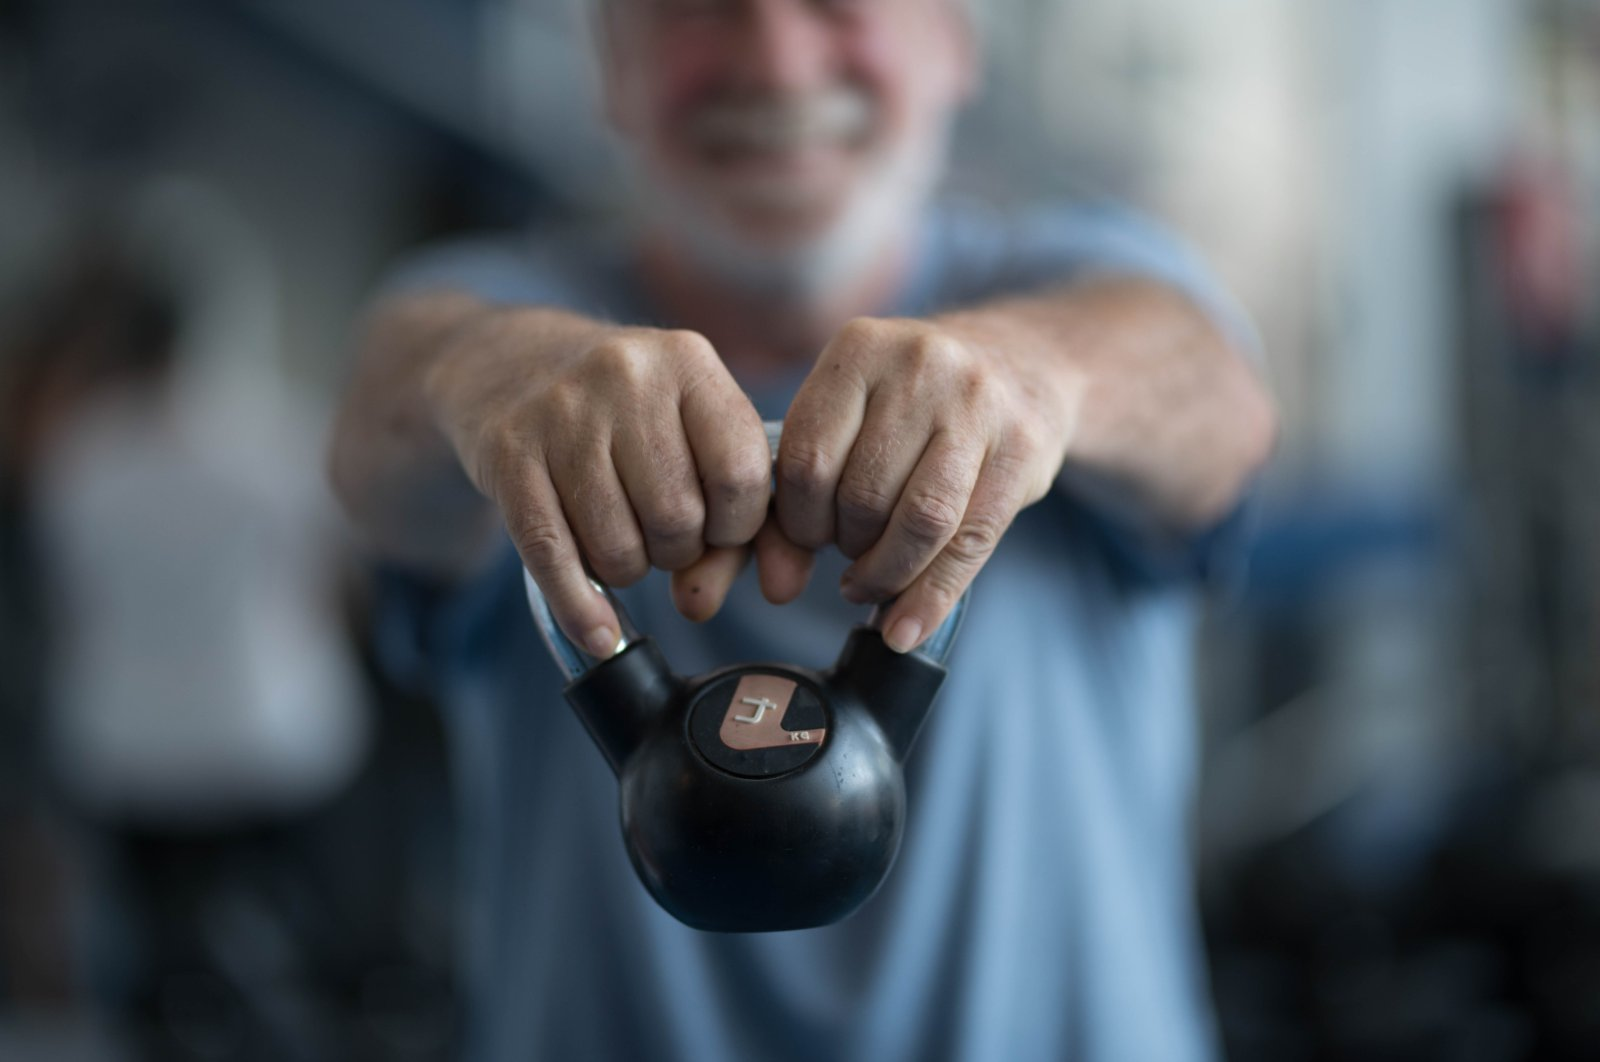 An elderly man holding a weight at the gym. (Shutterstock Photo)